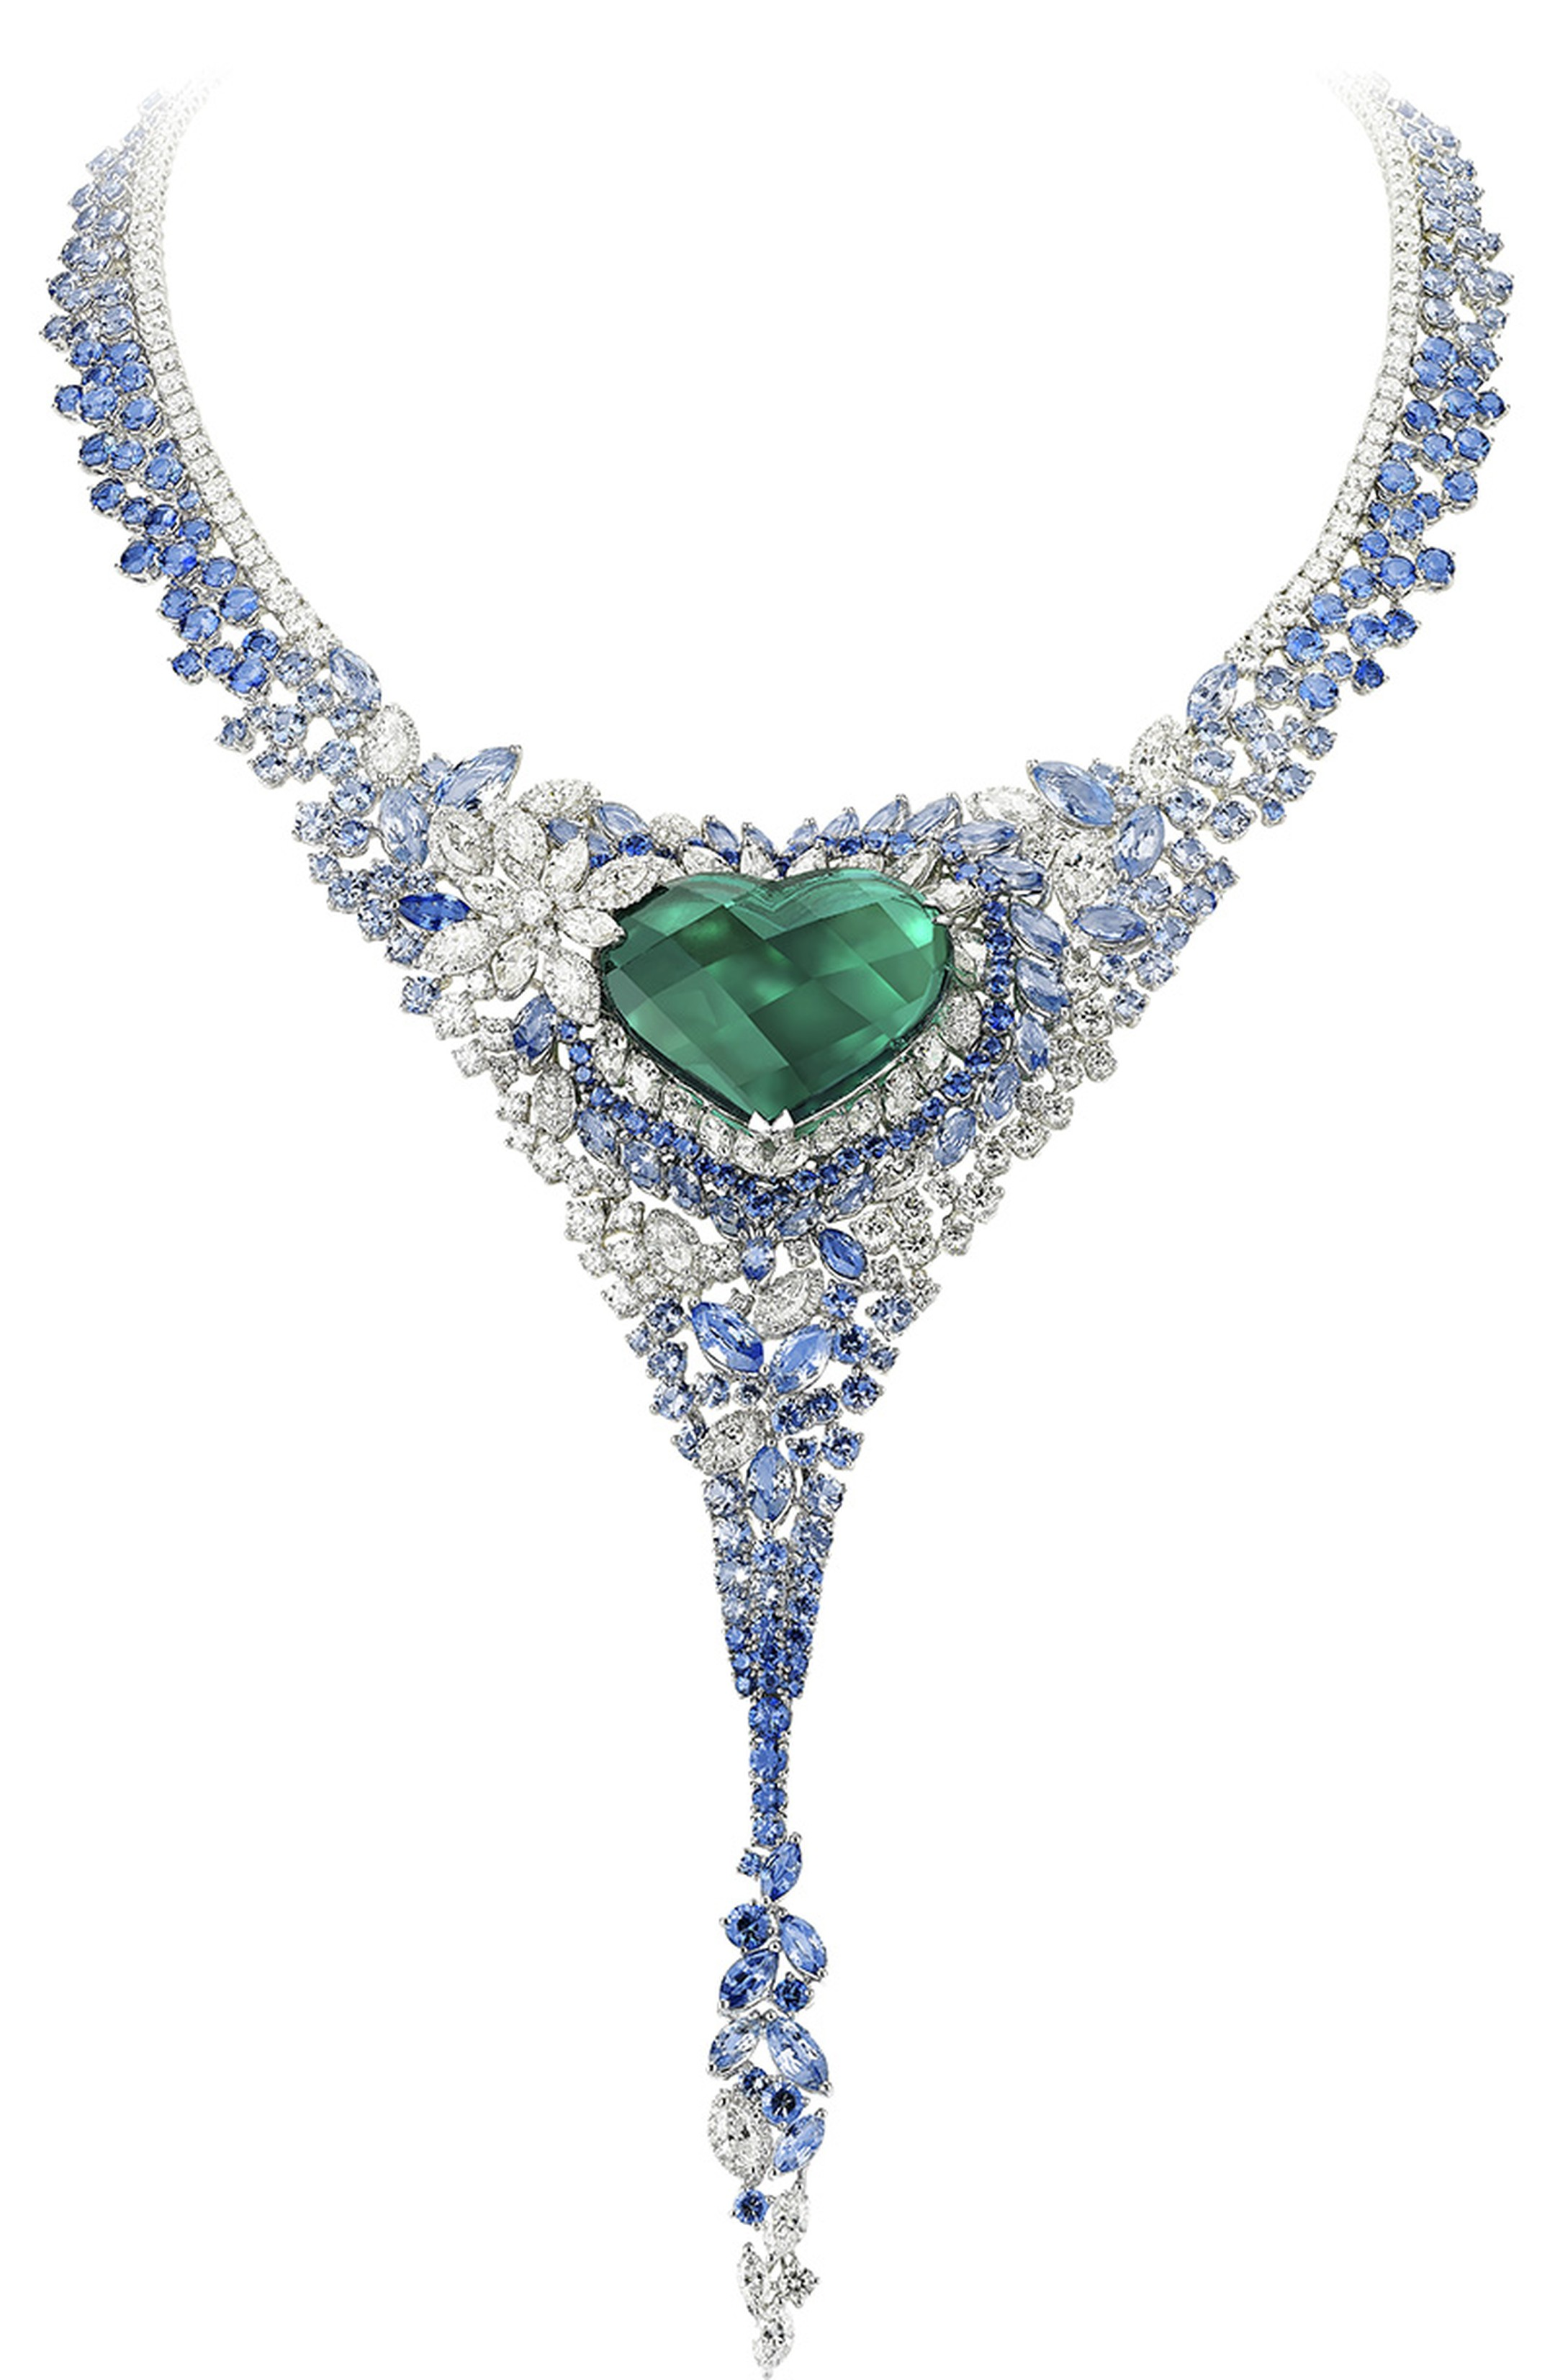 01-Avakian-Heart-shape-emerald-and-sapphire-necklace